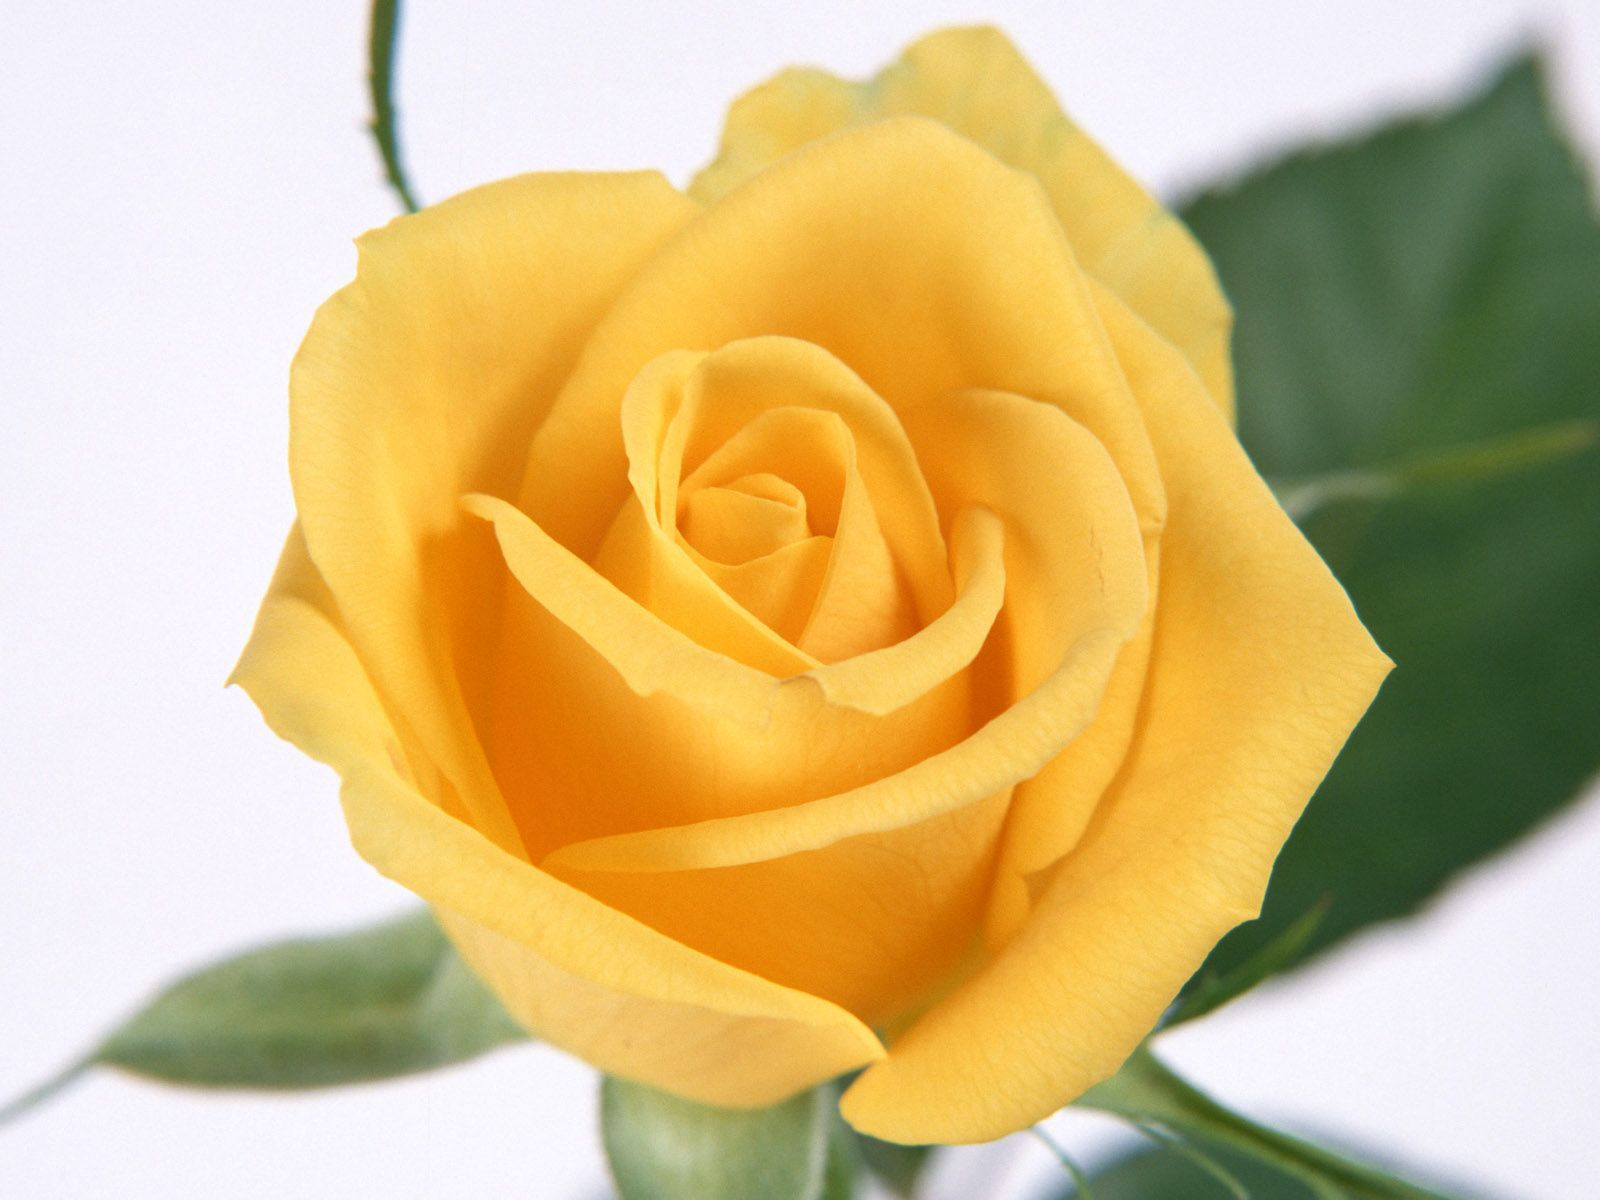 Yellow roses flowers pictures flowers wallpapers red roses yellow roses flowers pictures flowers wallpapers red roses dhlflorist Image collections